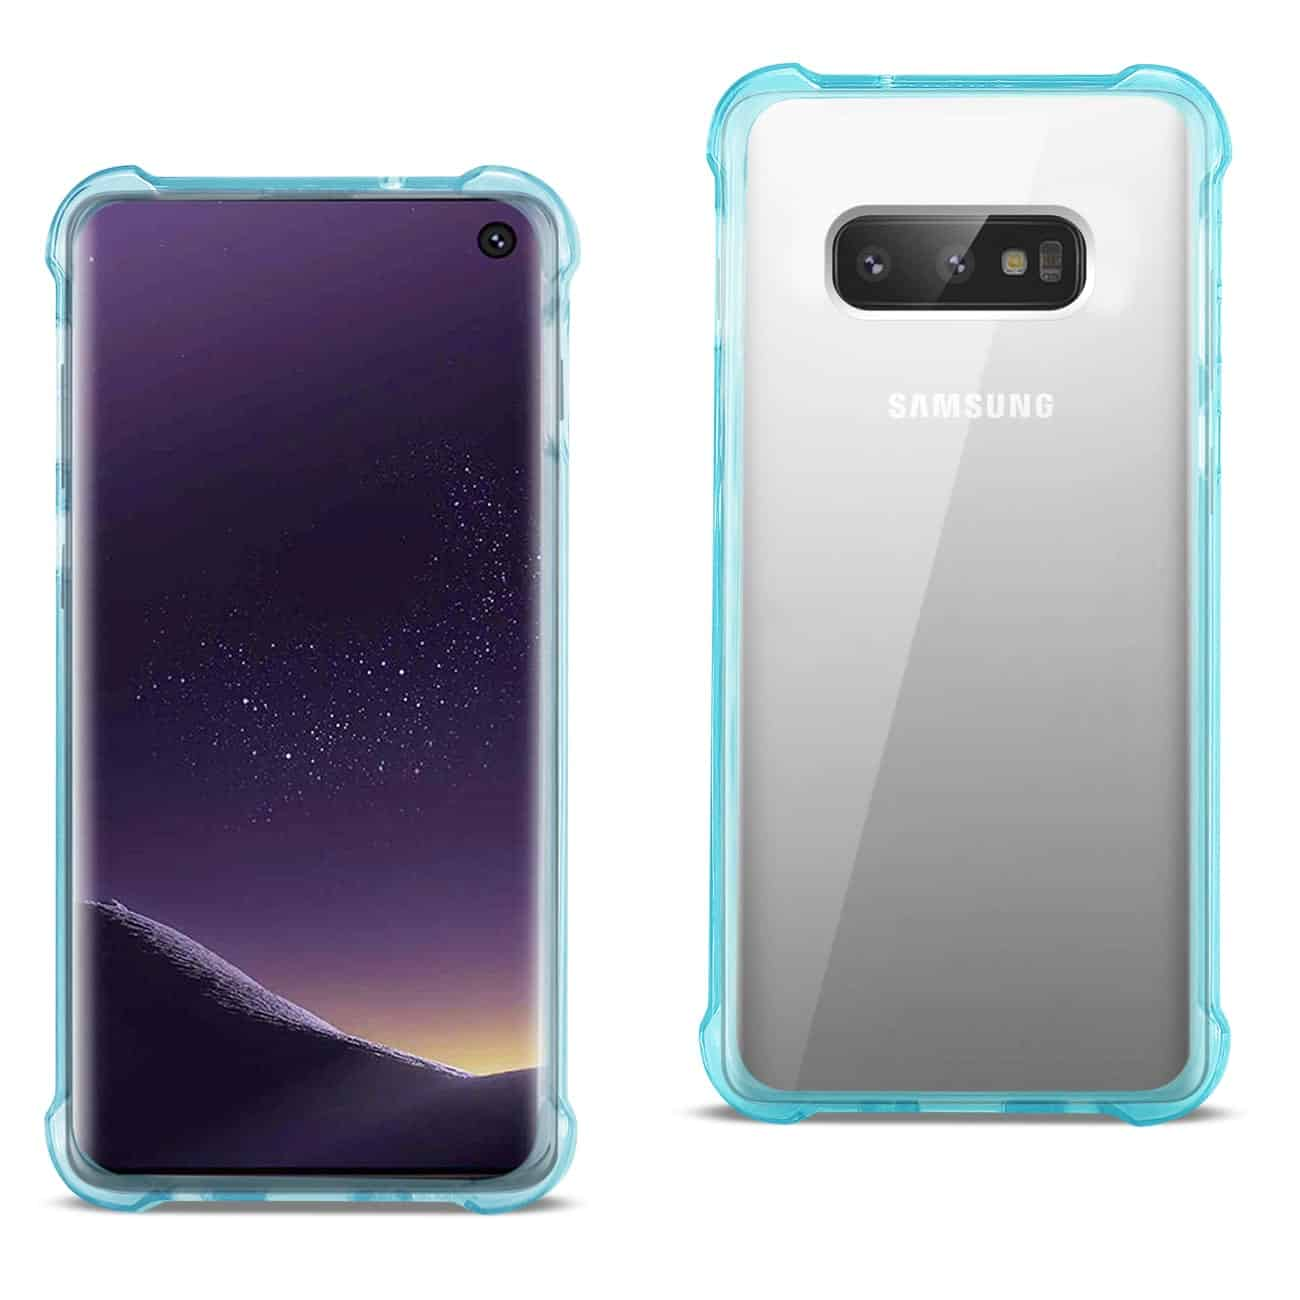 SAMSUNG GALAXY S10 Lite(S10e) Clear Bumper Case With Air Cushion Protection In Clear Navy